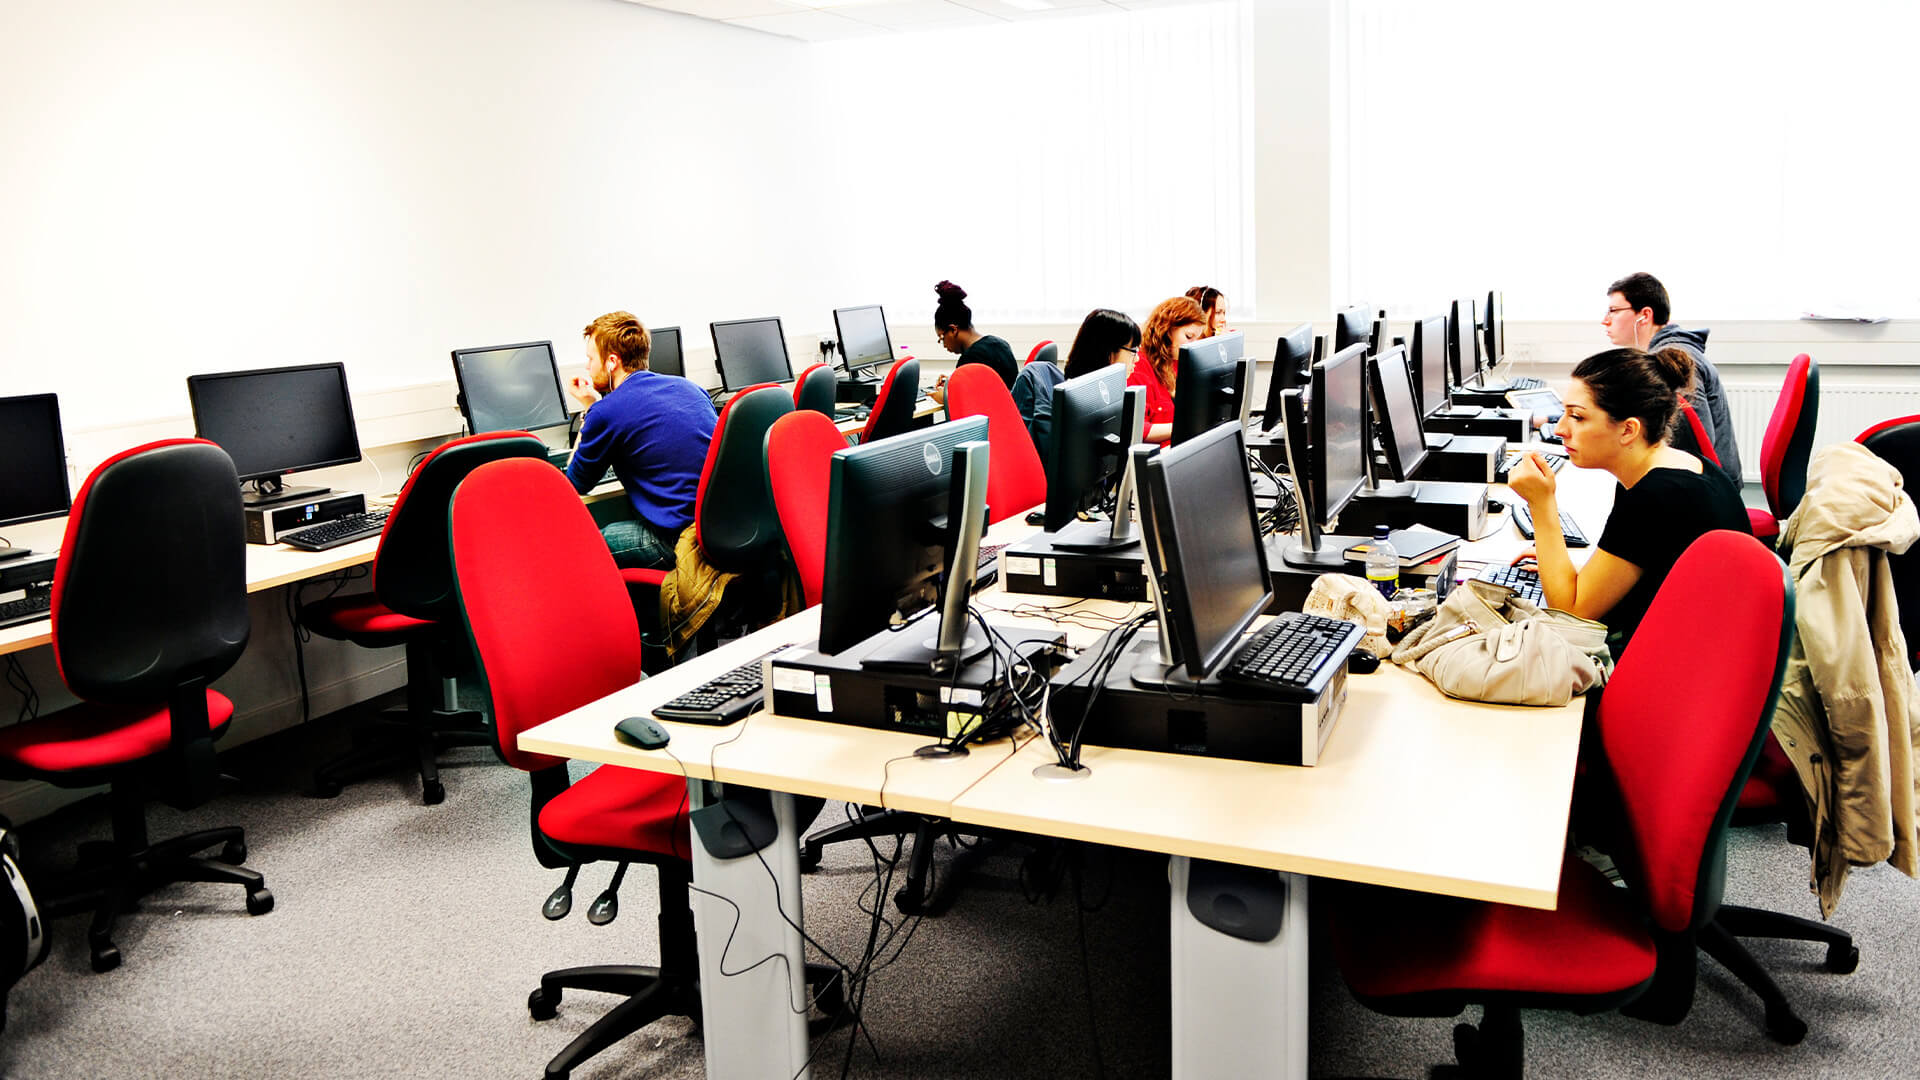 There are 3,000 computers across the University of Manchester campus